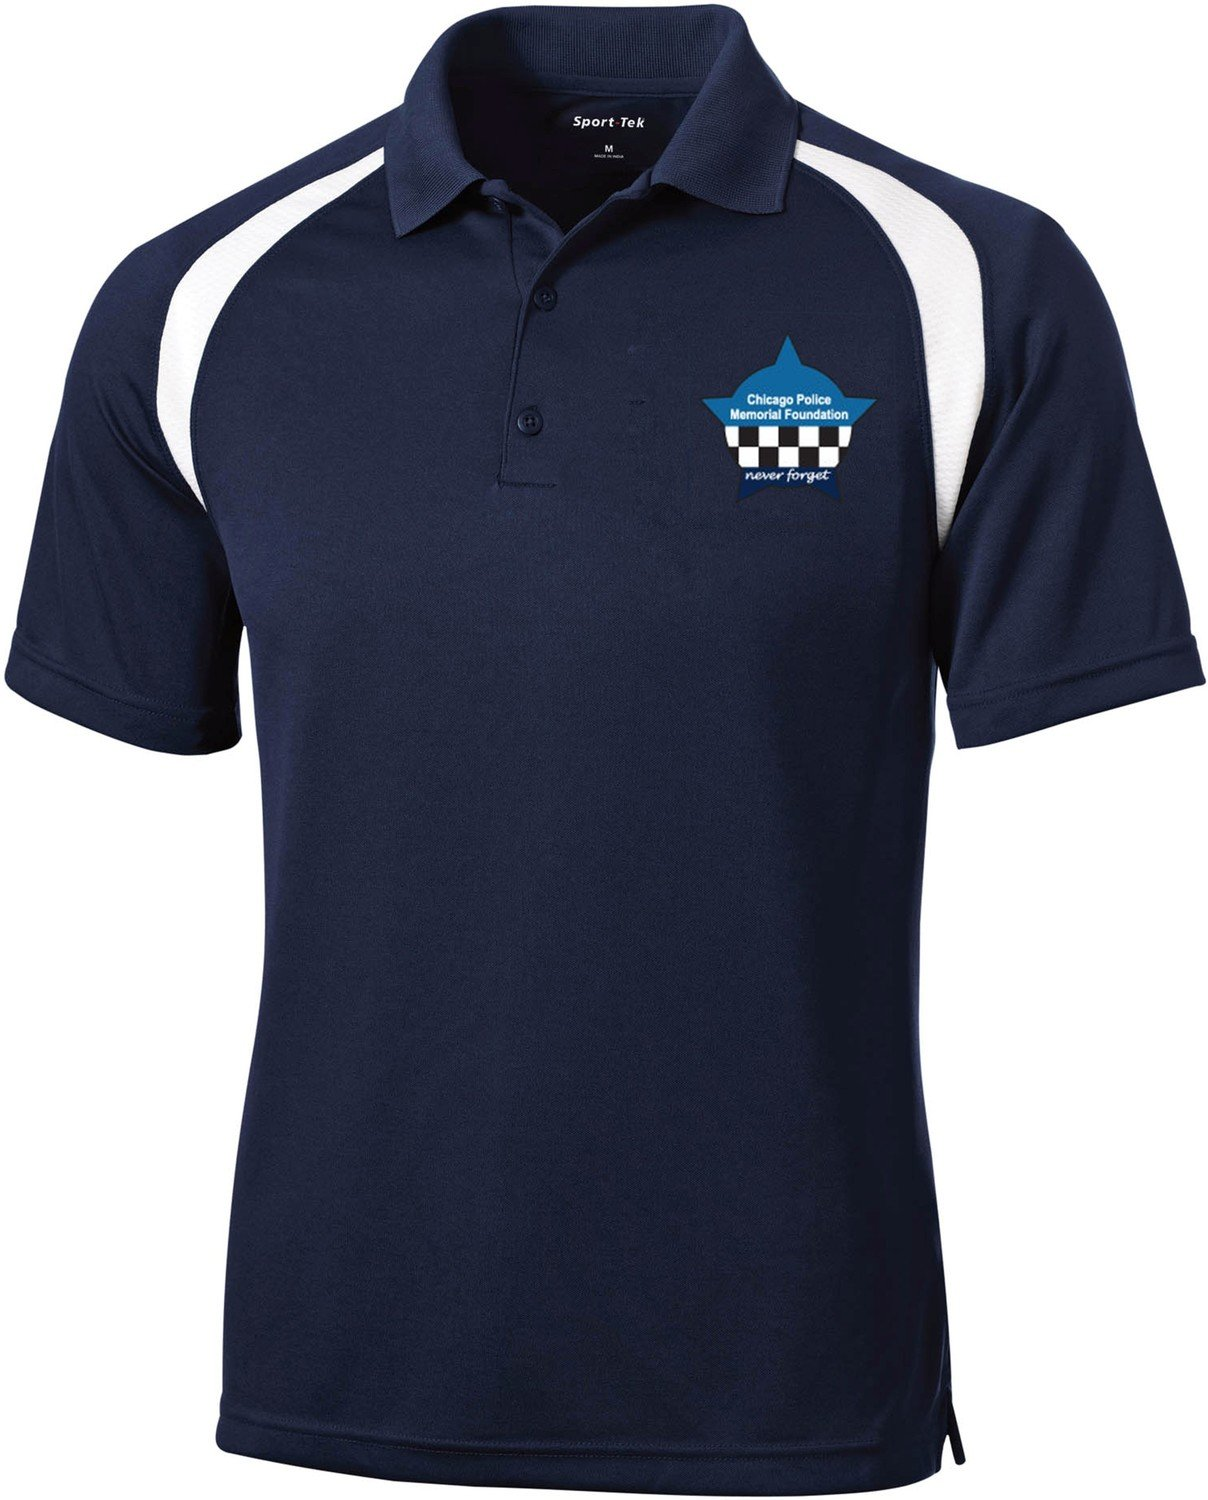 CPD Memorial Foundation Navy Polo Shirt T476